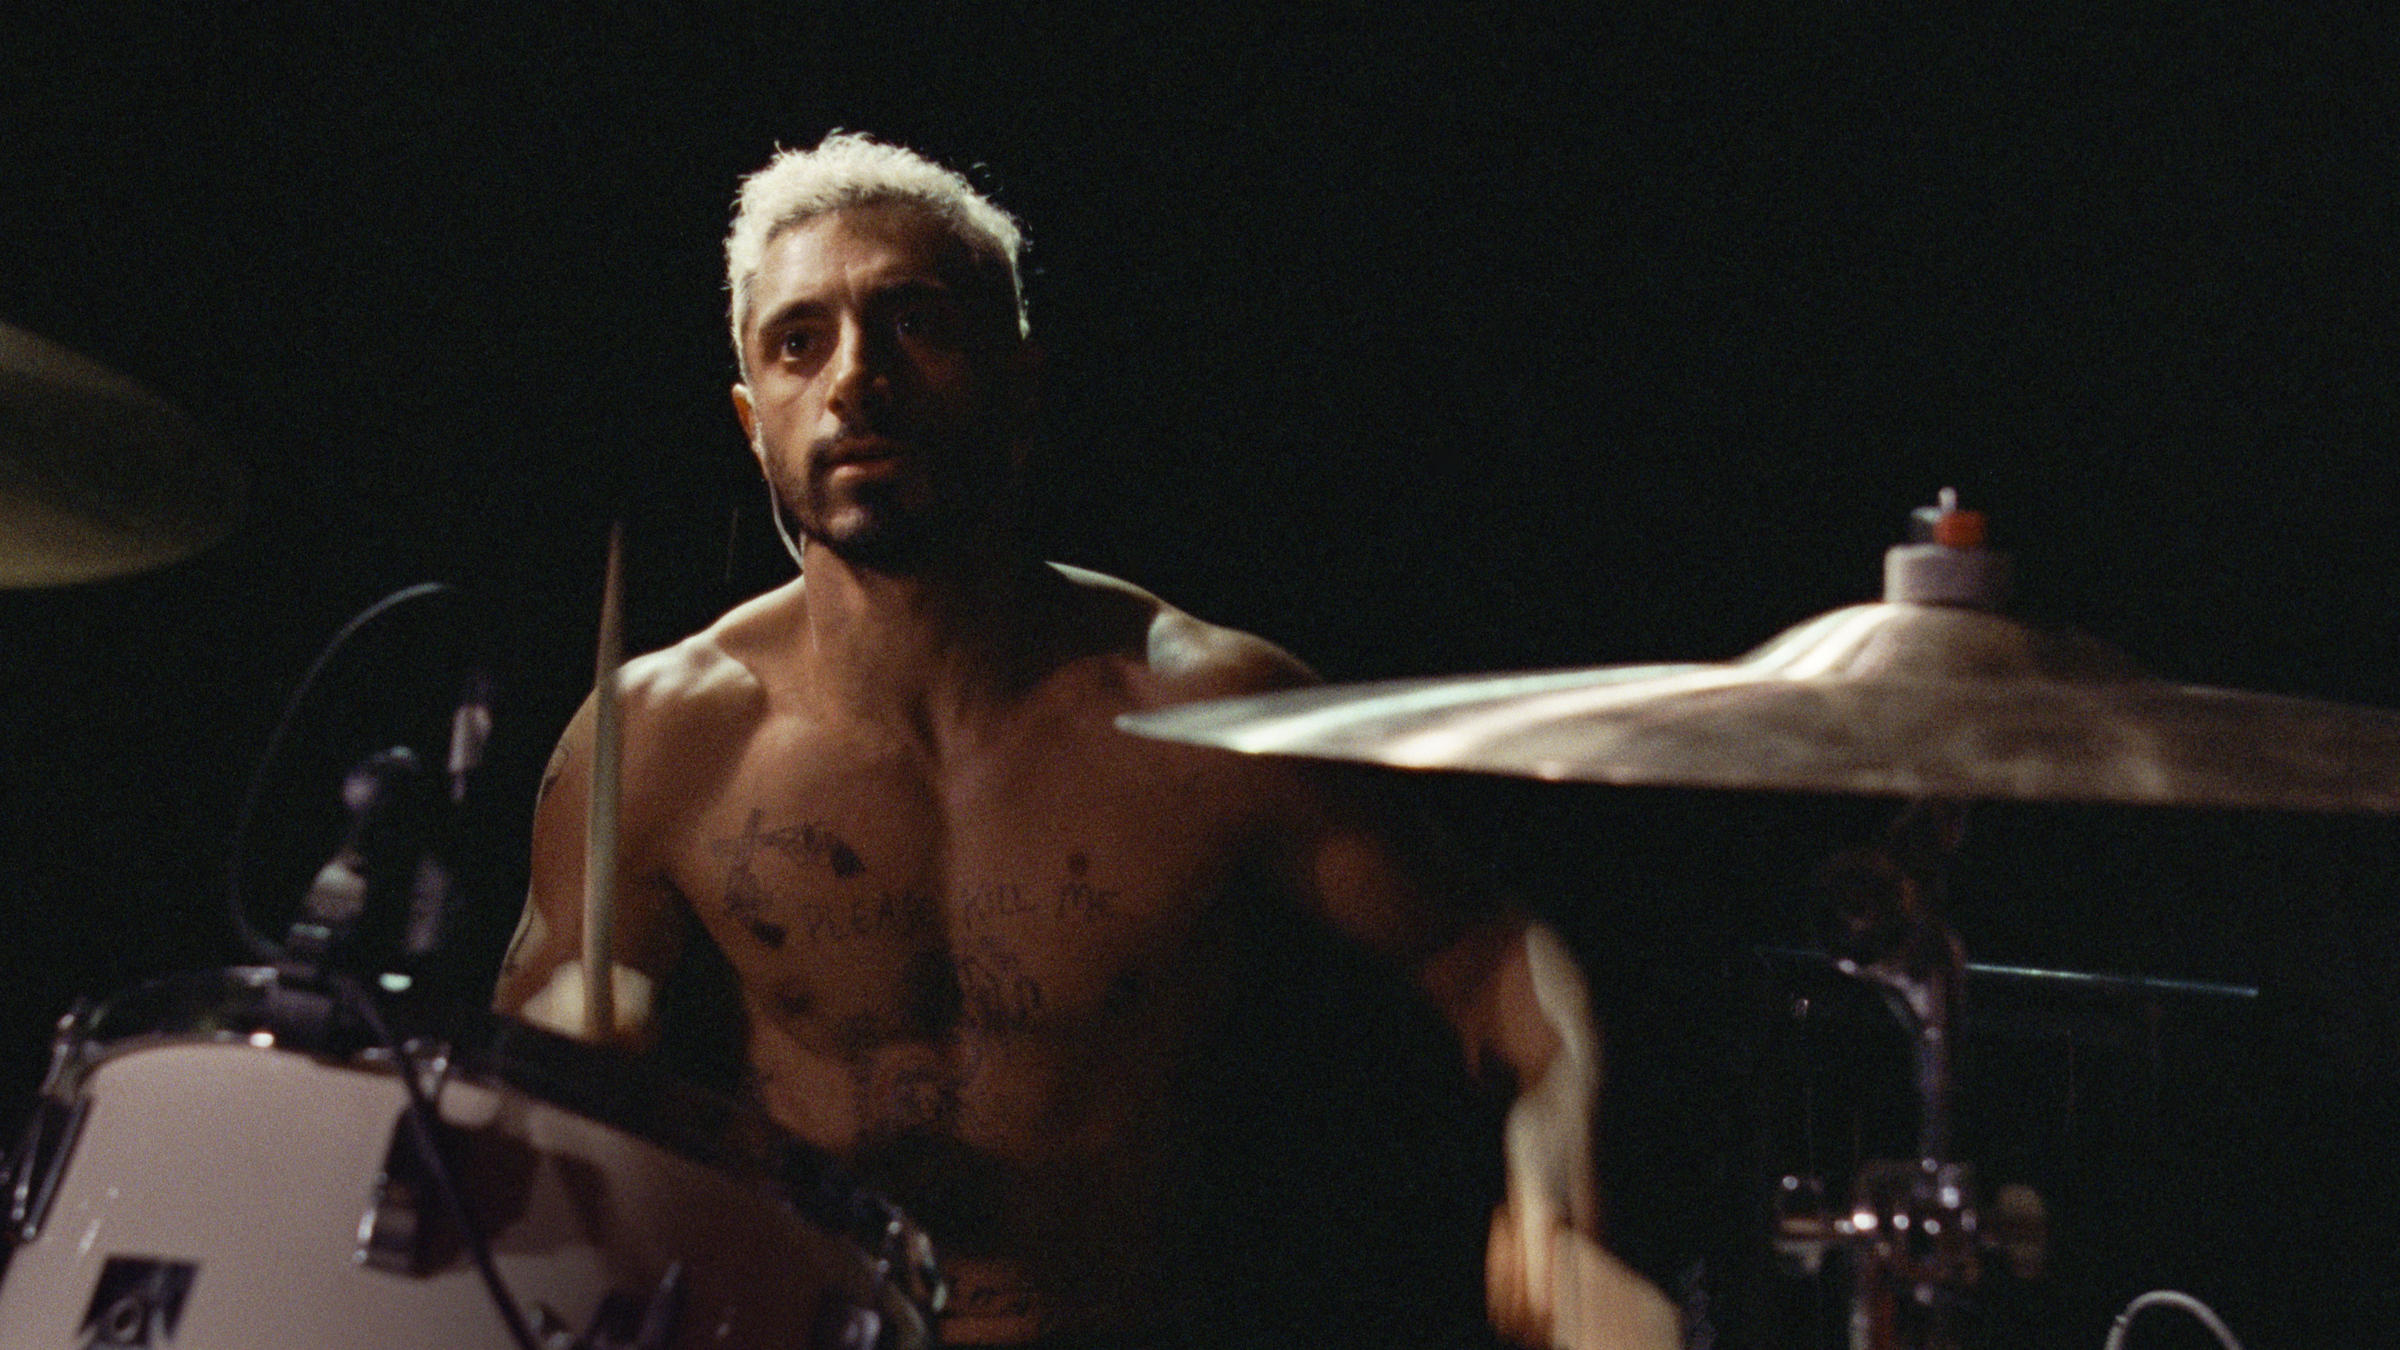 MC And Actor Riz Ahmed Embraces A New Kind Of Role In 'Sound Of Metal' |  WBFO